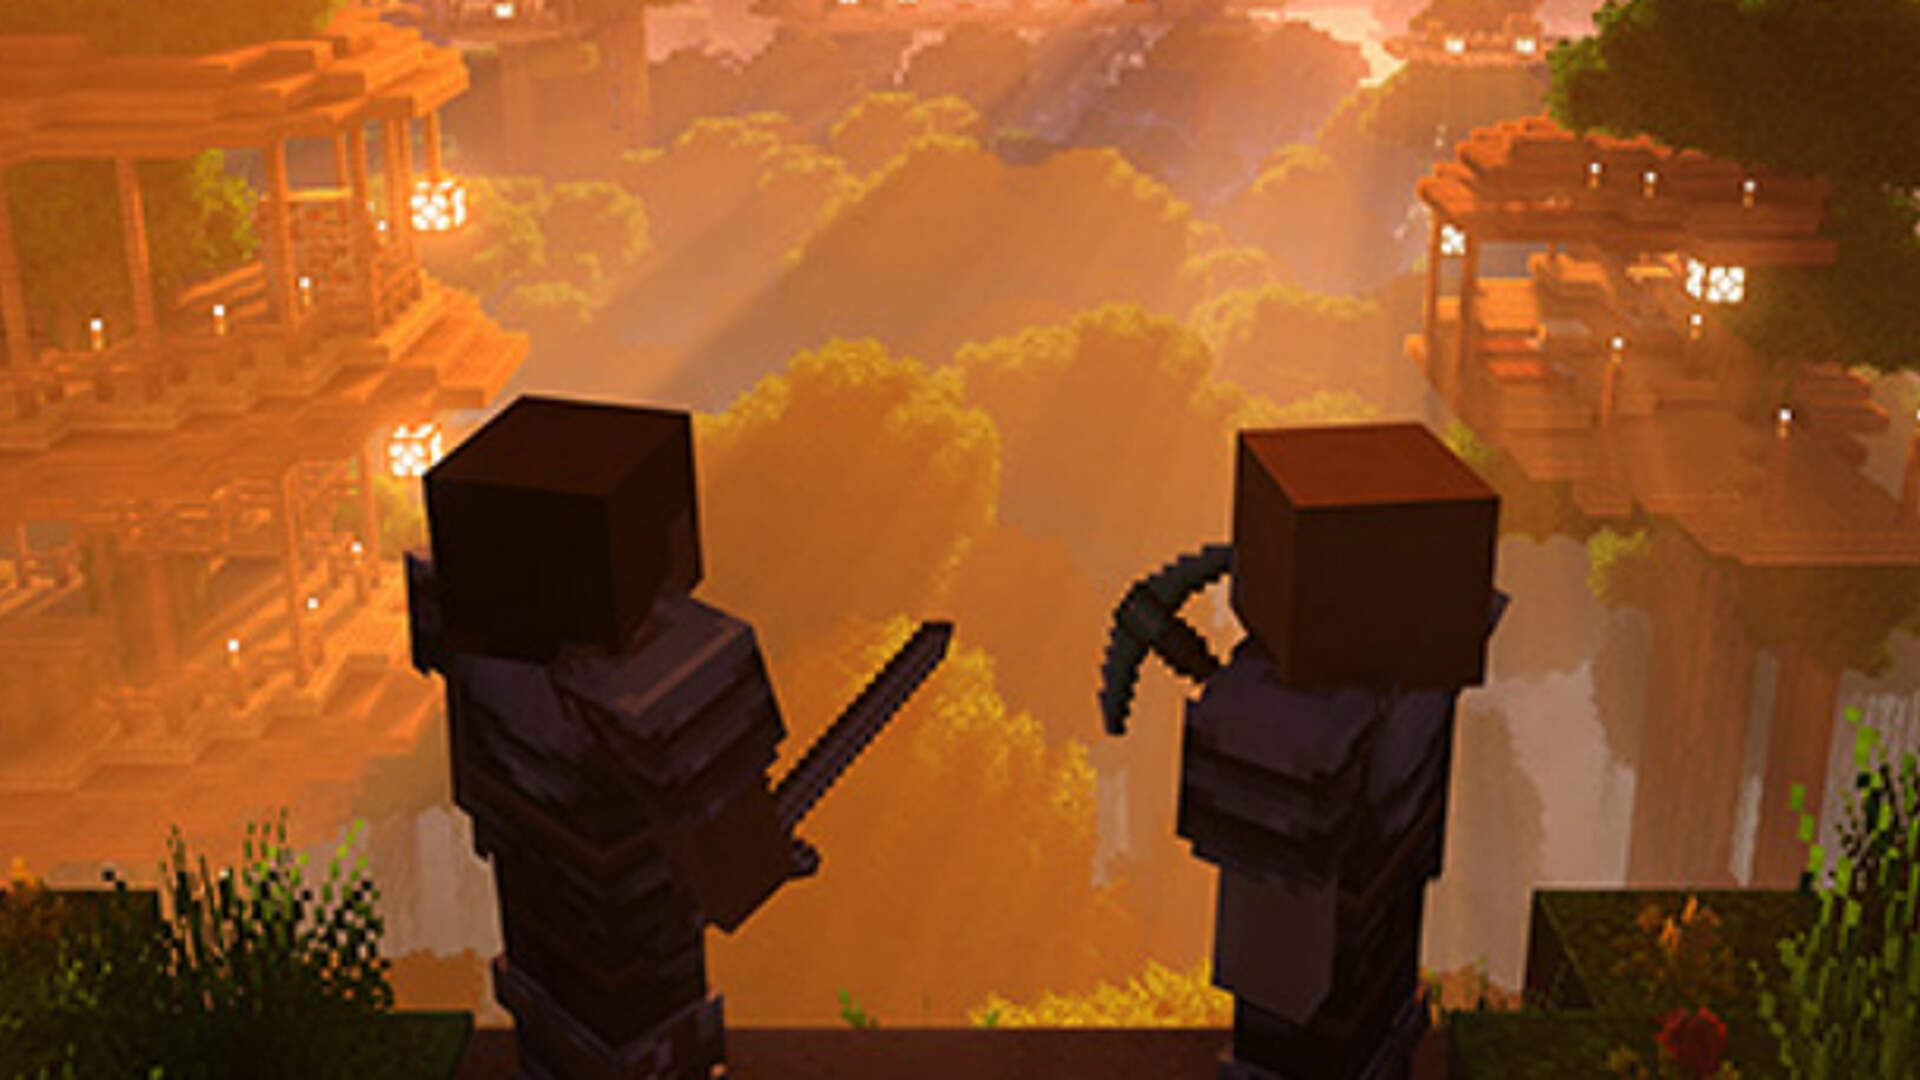 Minecraft Aquatic Update Phase One Out Now for Xbox, PC, Mobile, Oculus and More